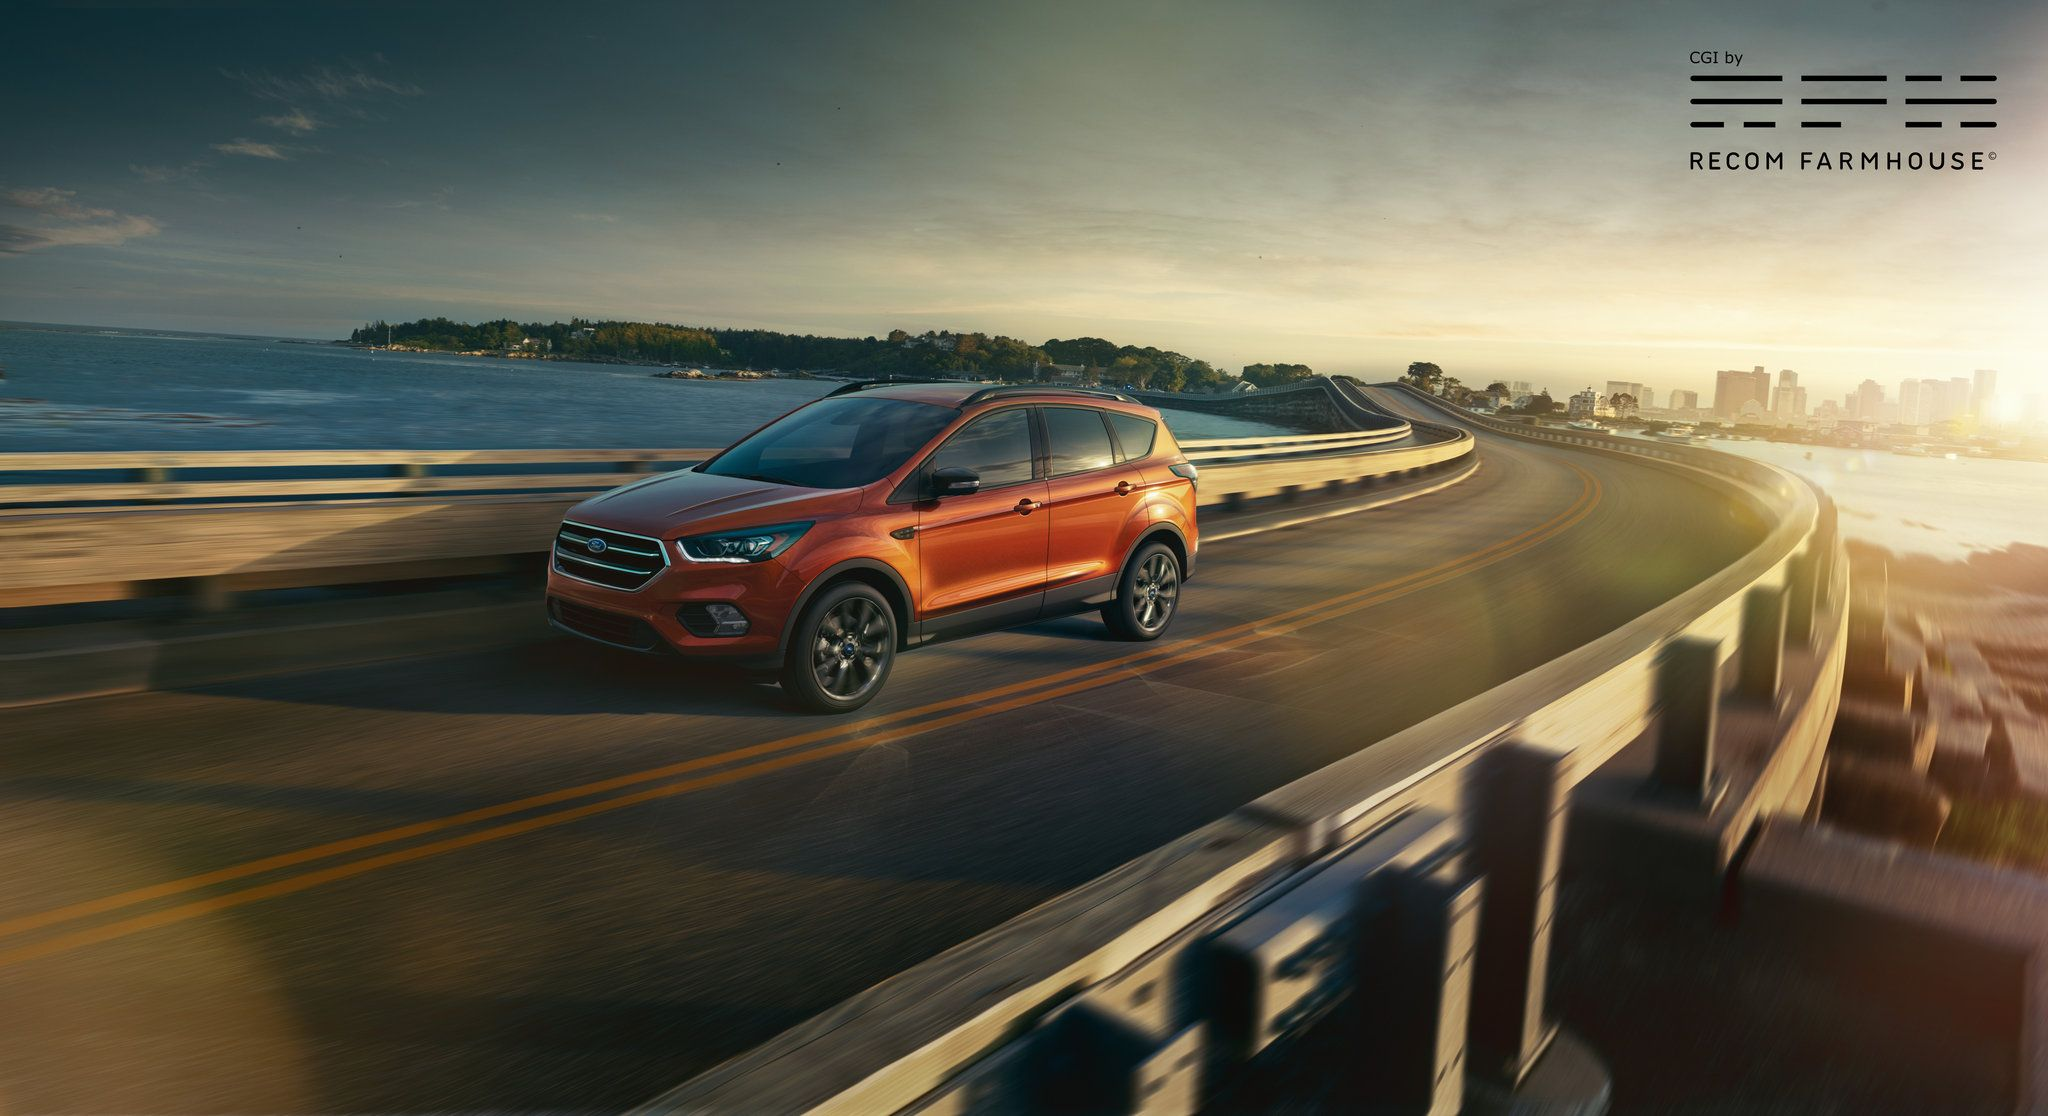 Pin by Begad Alomrany on Automotive 2017 ford escape